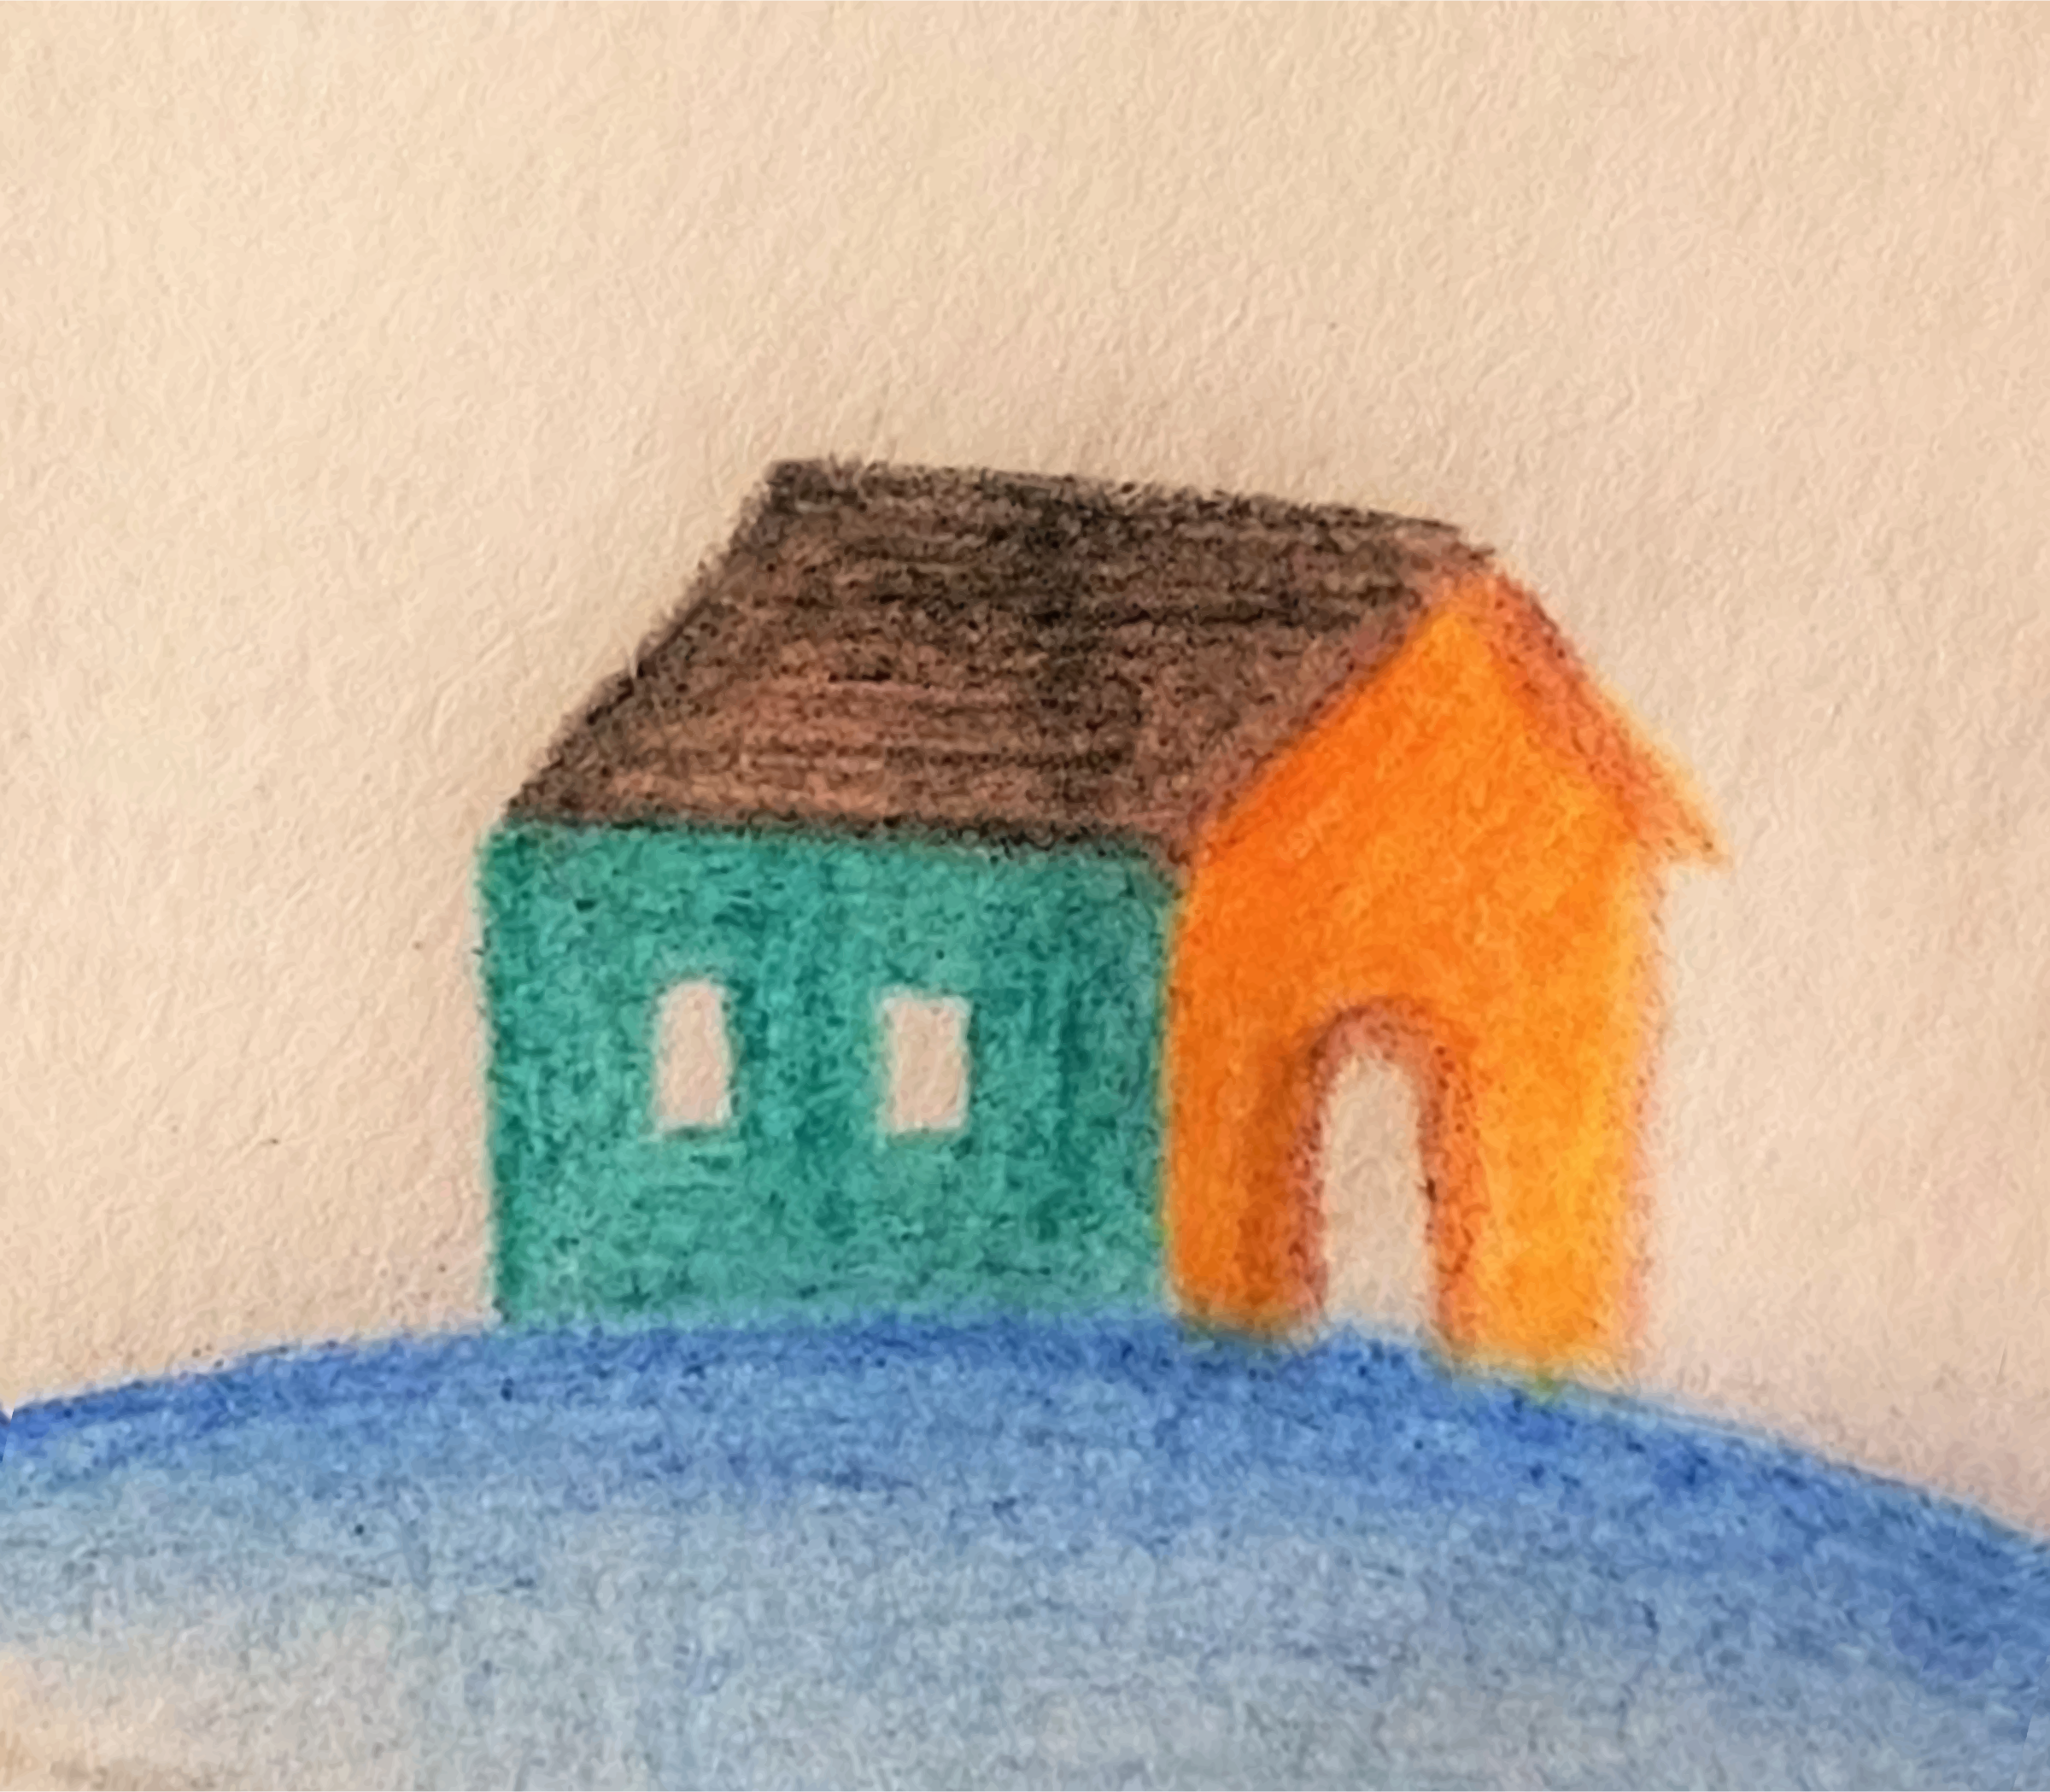 Small home (righted) by Firkin